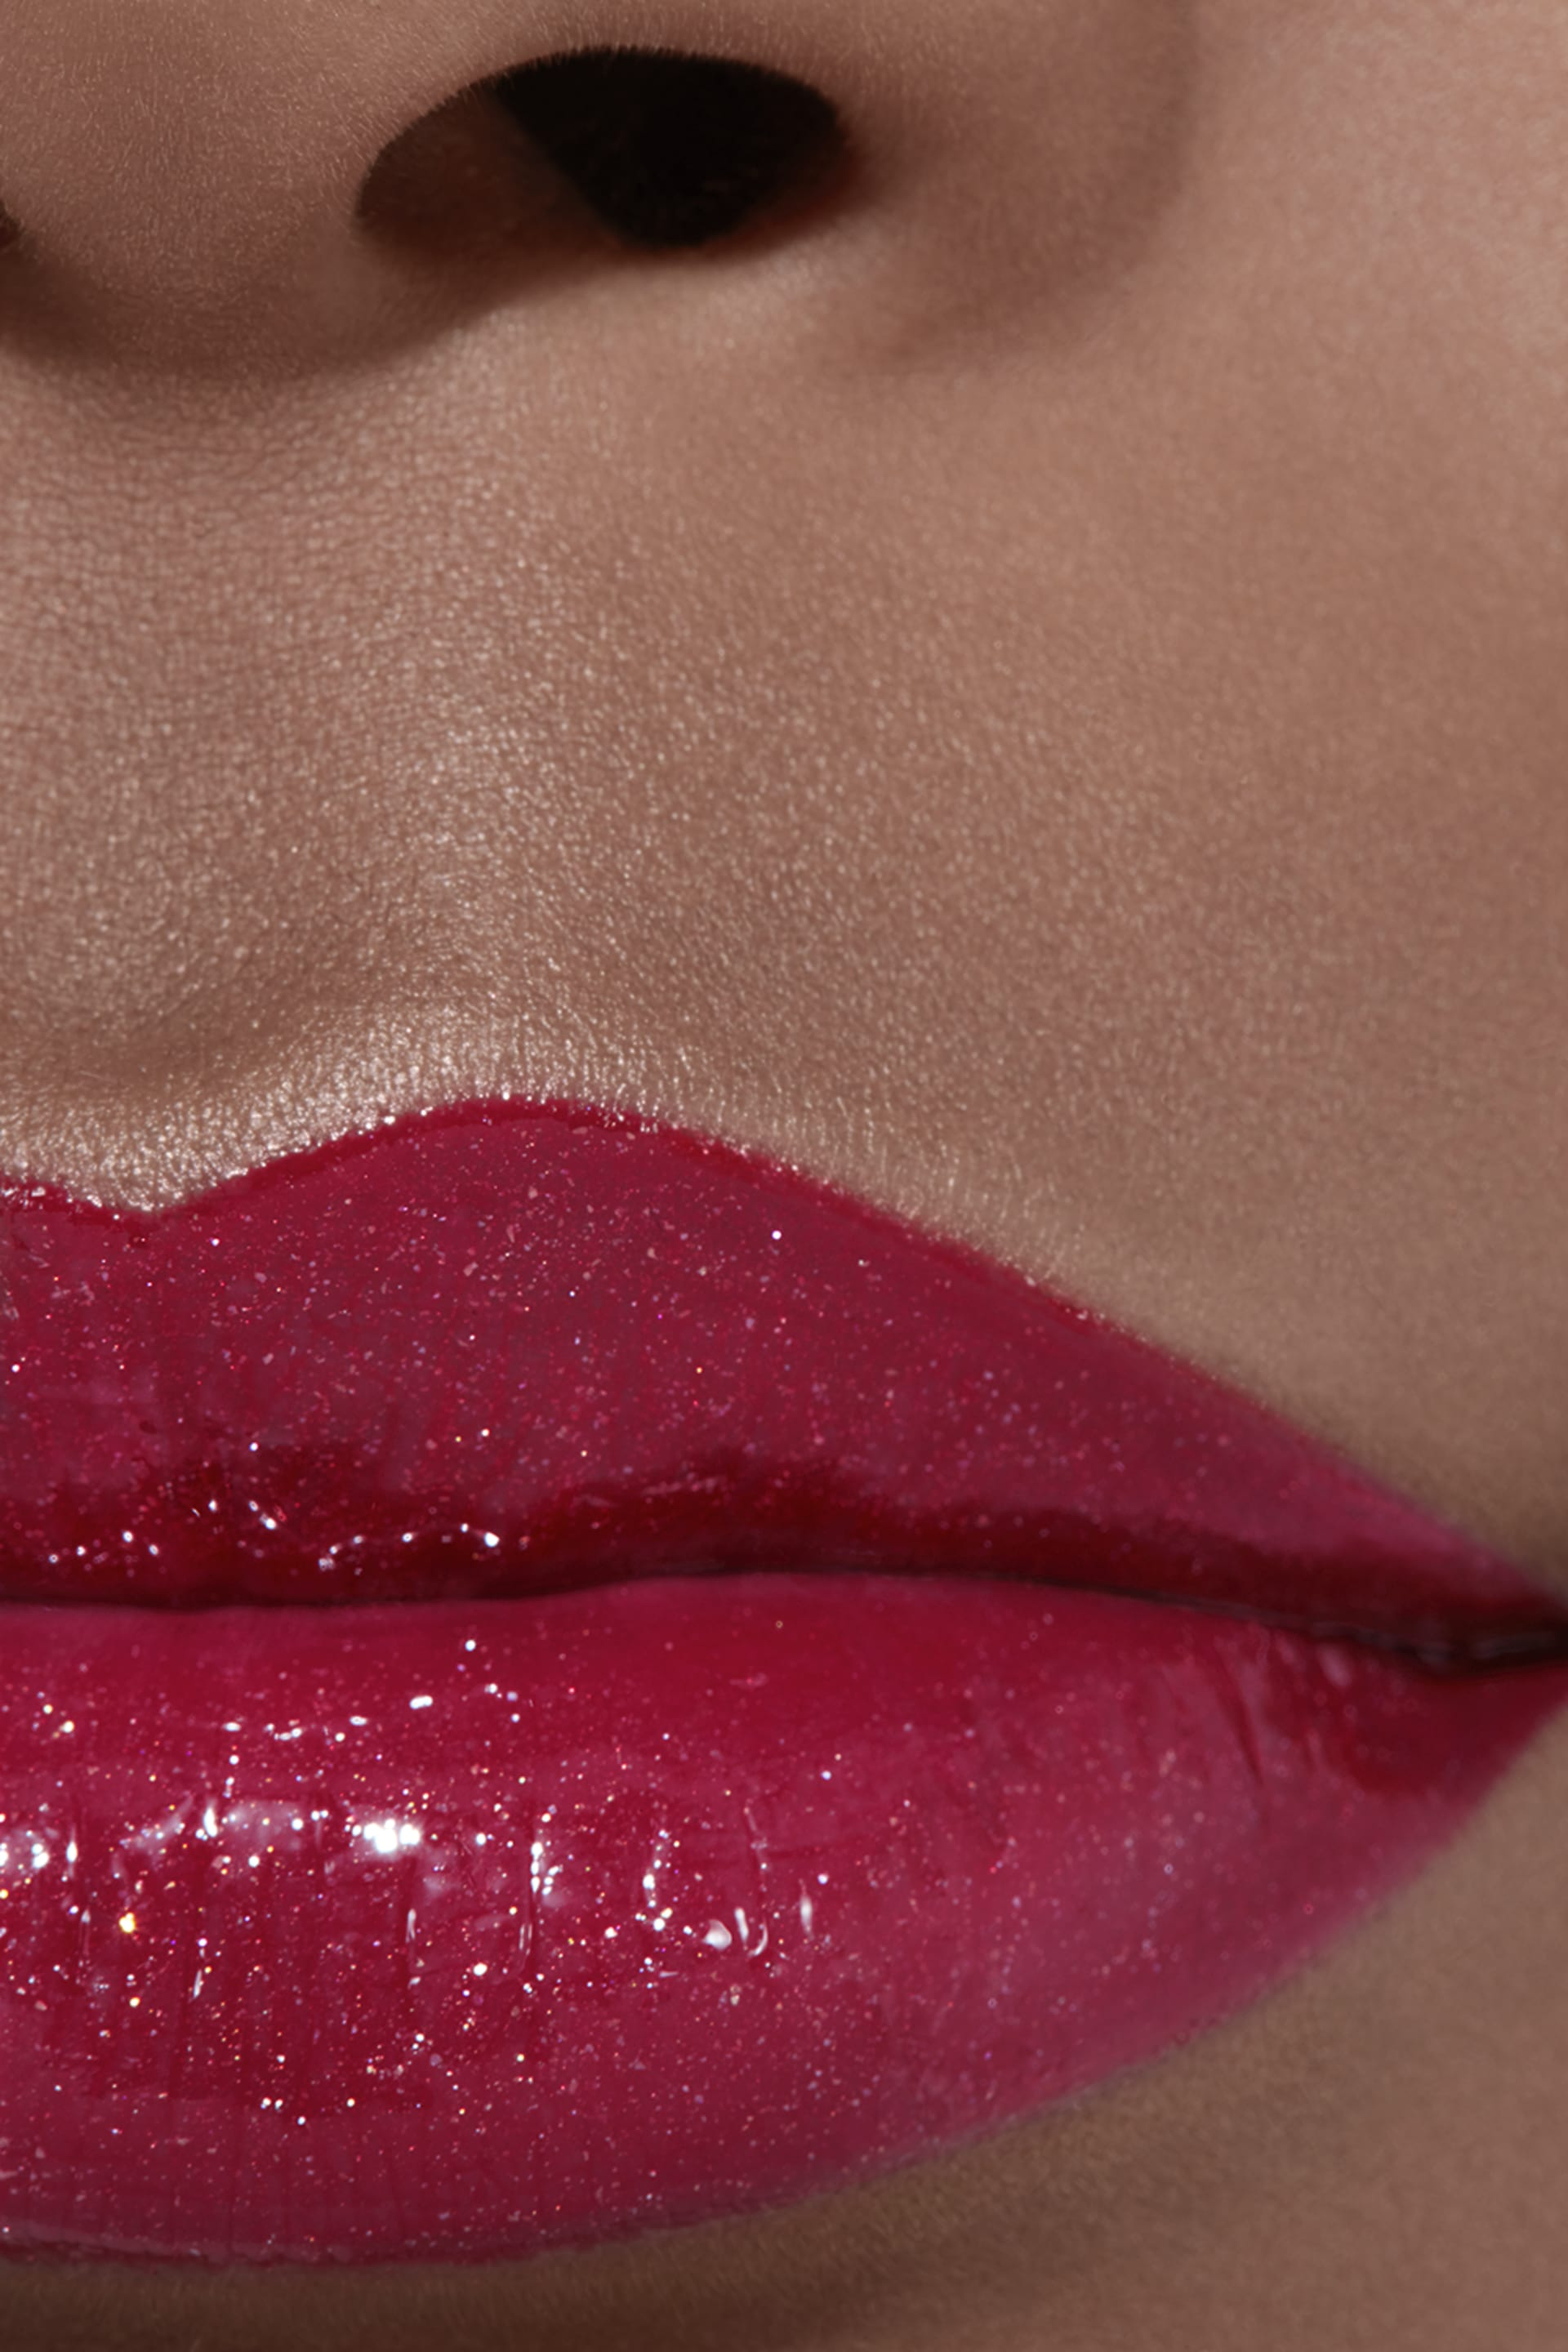 Visuel d'application maquillage 2 - ROUGE COCO GLOSS 774 - EXCITATION